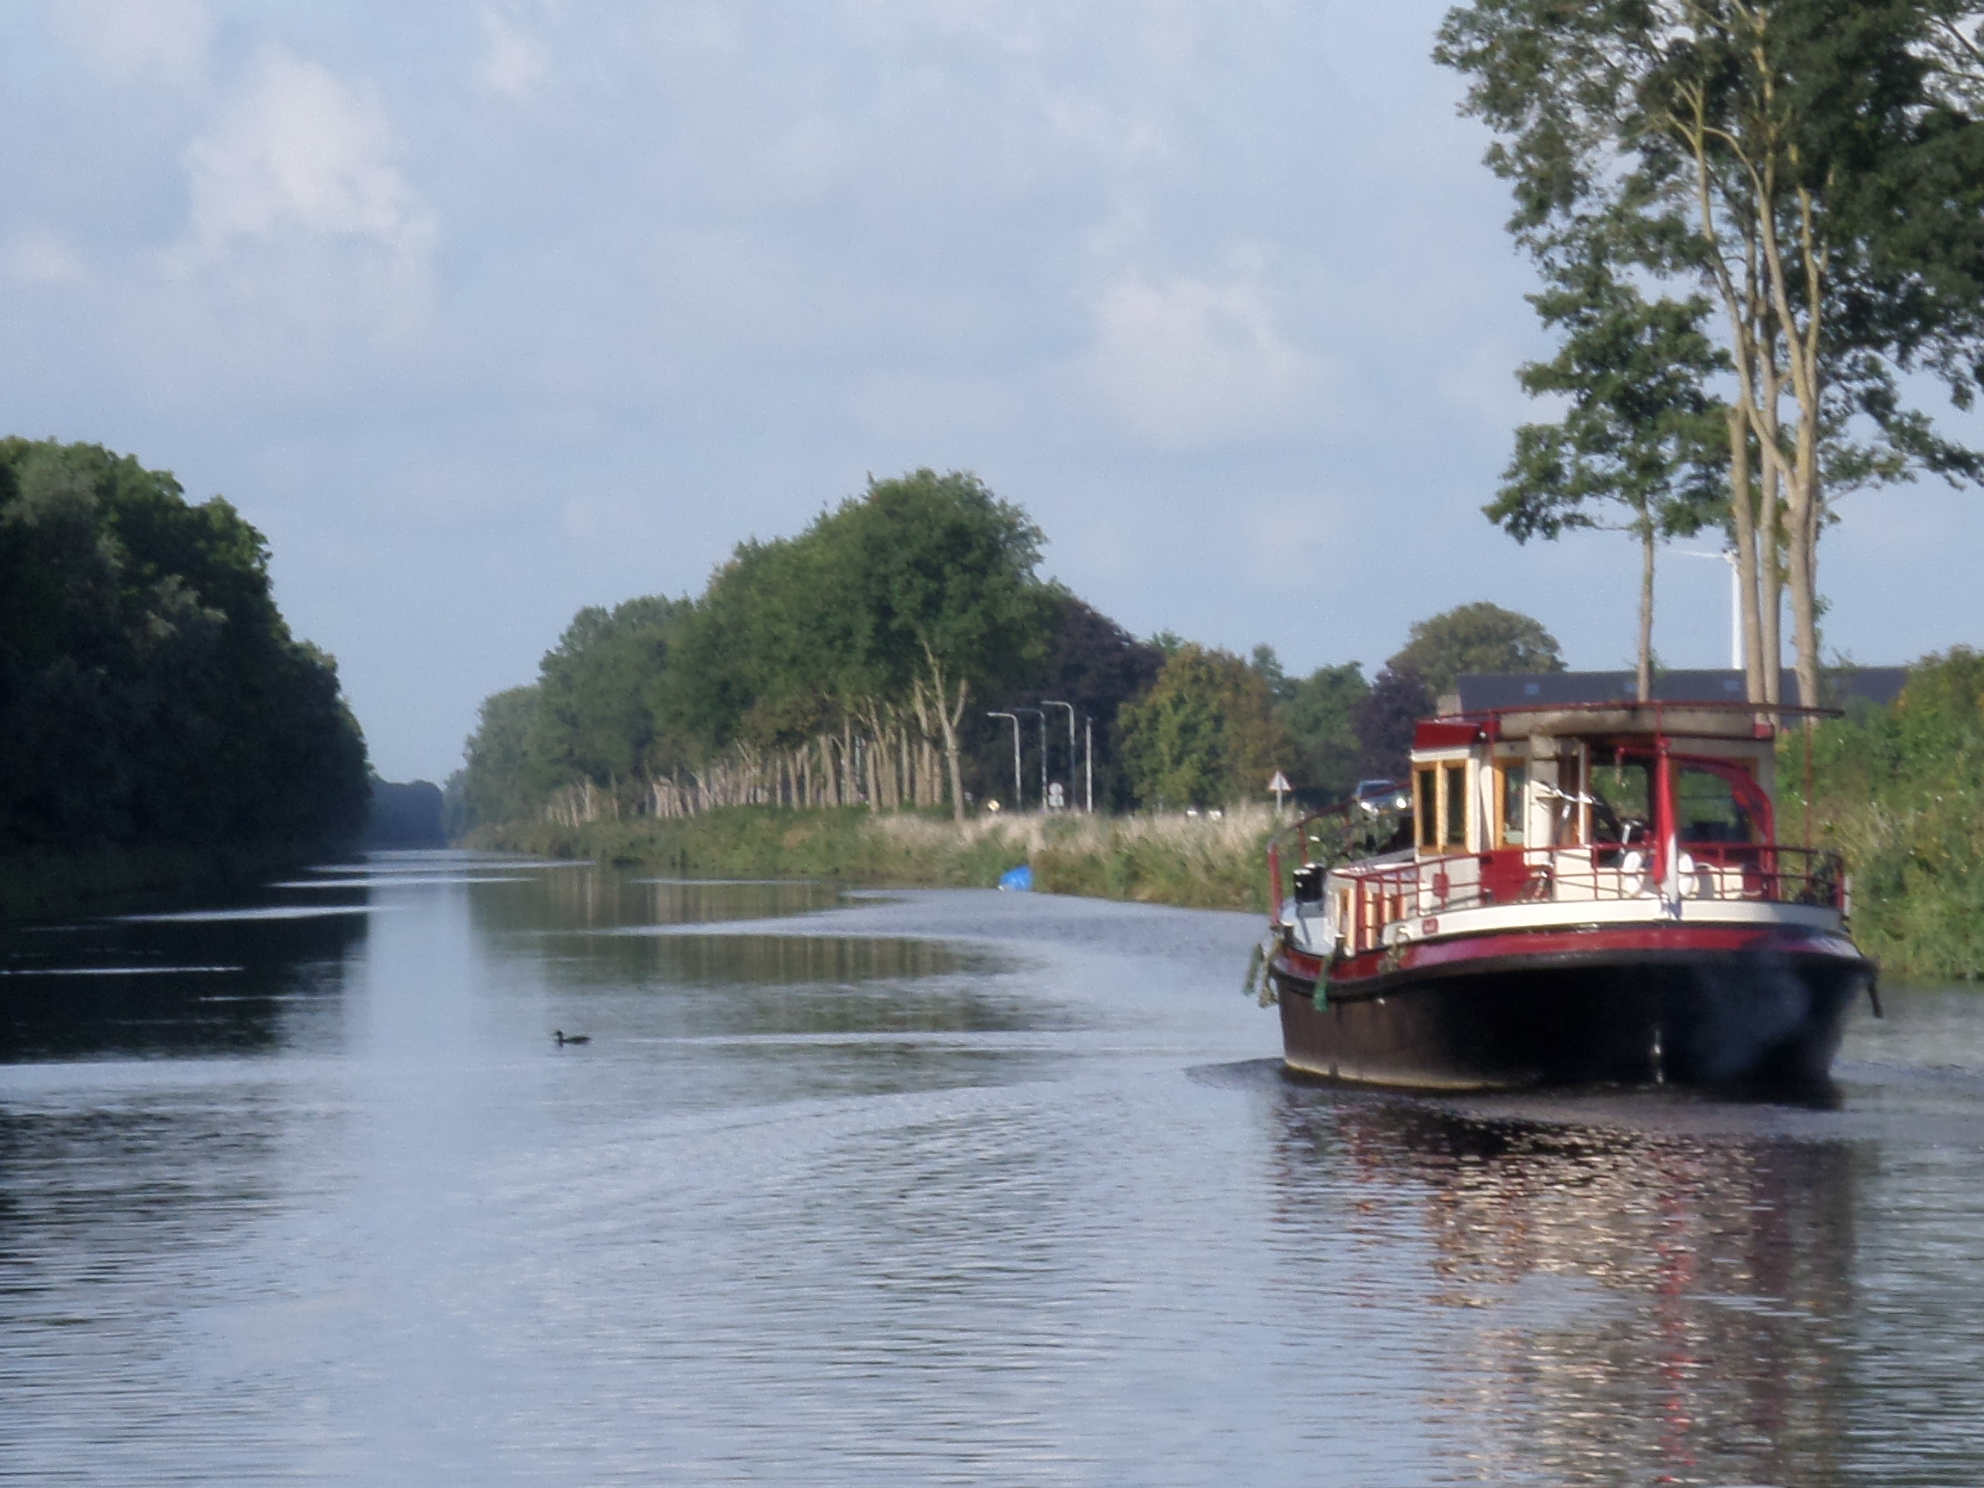 This is the beginning of the dream - a waterway to: who knows where or what?